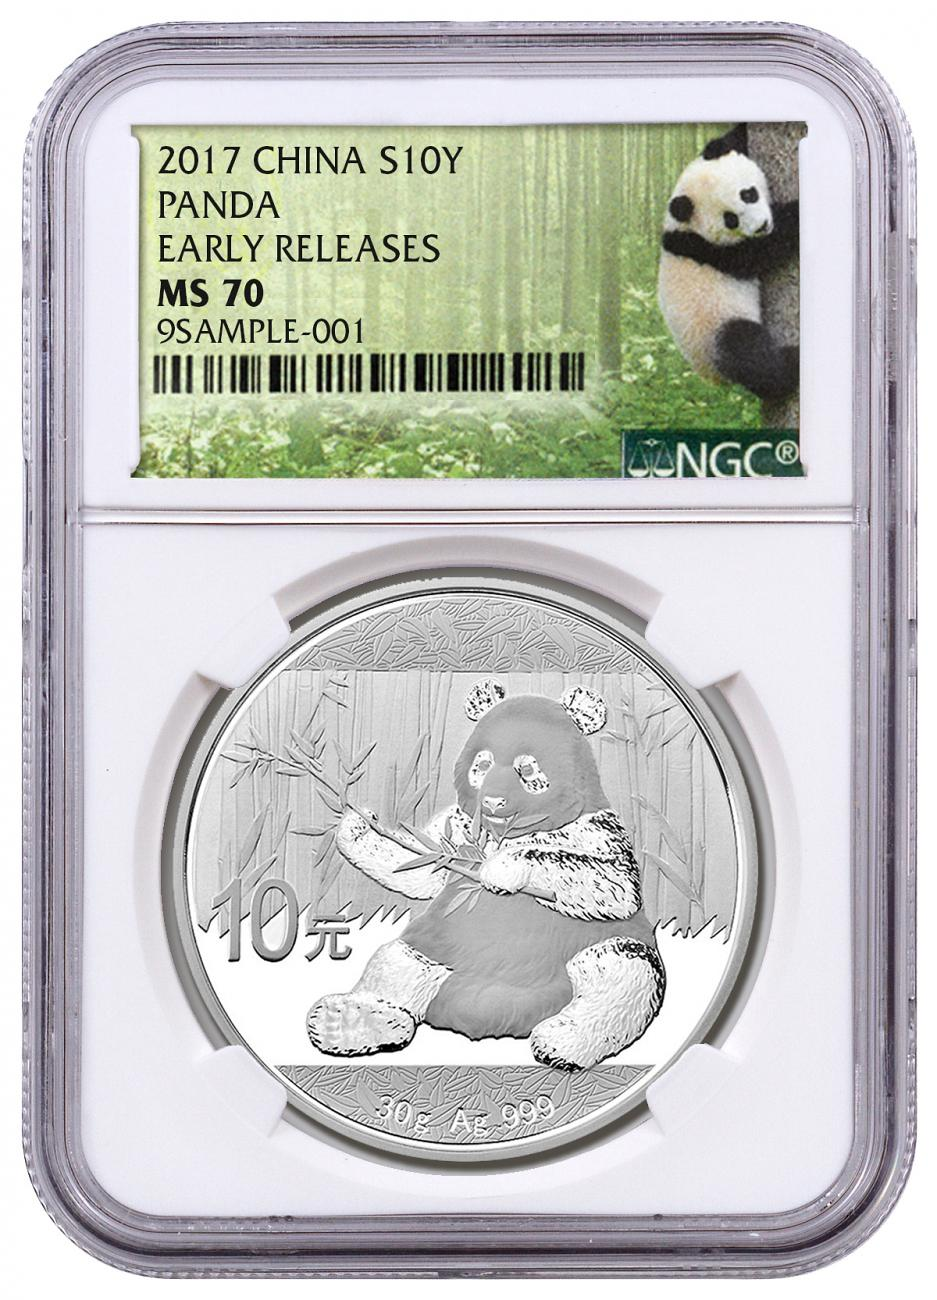 2017 30 Gram China Panda 999 Silver Coin Bu Ngc Ms70